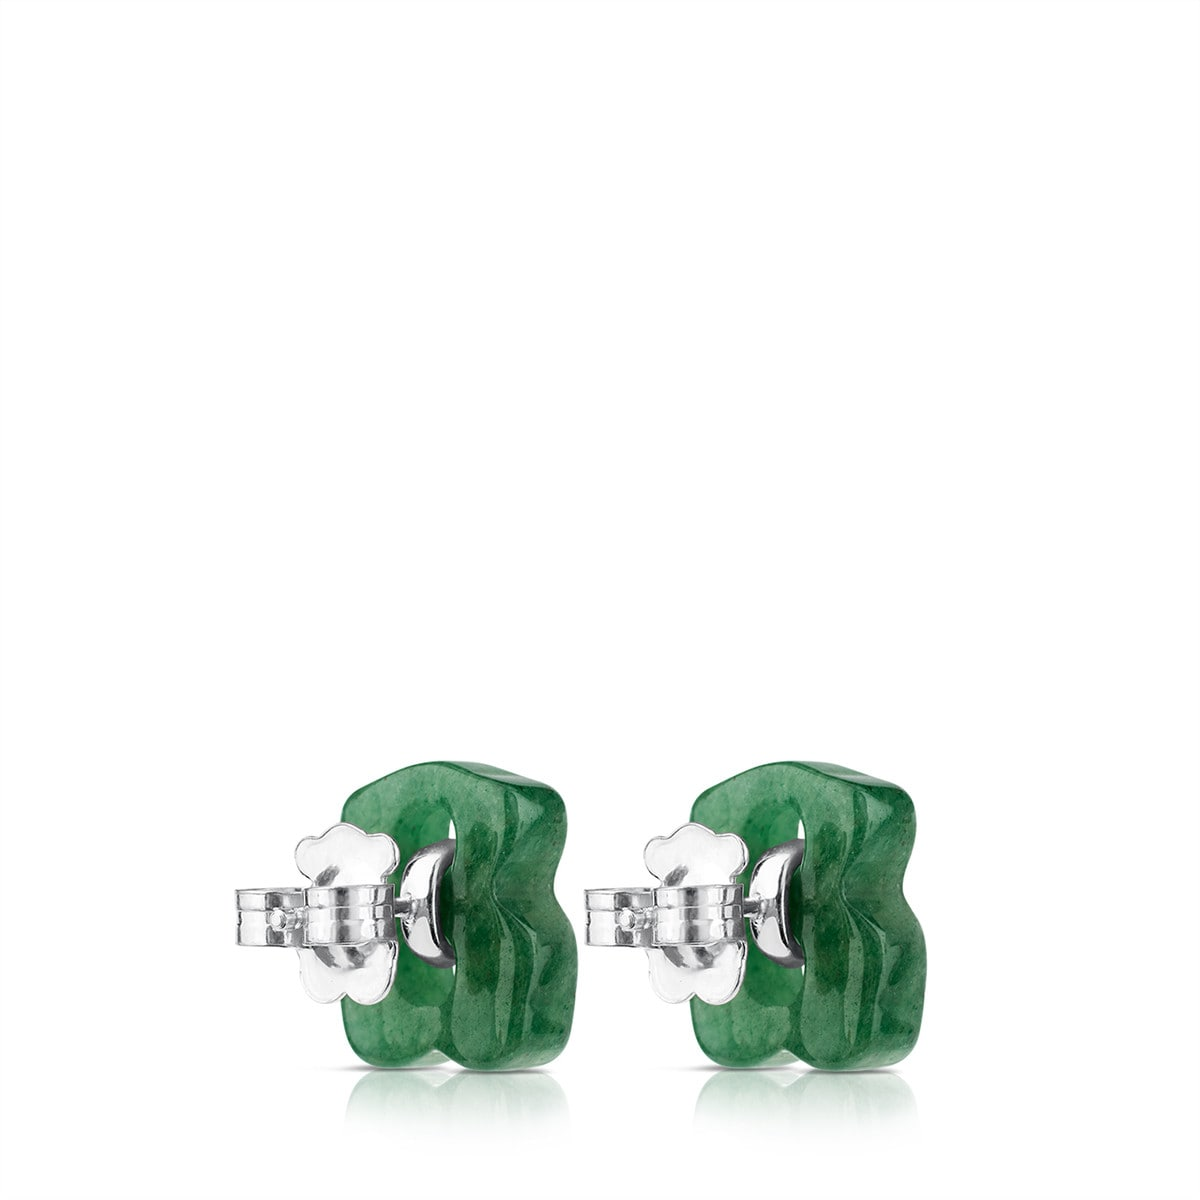 Silver Cruise Earrings with Aventurine